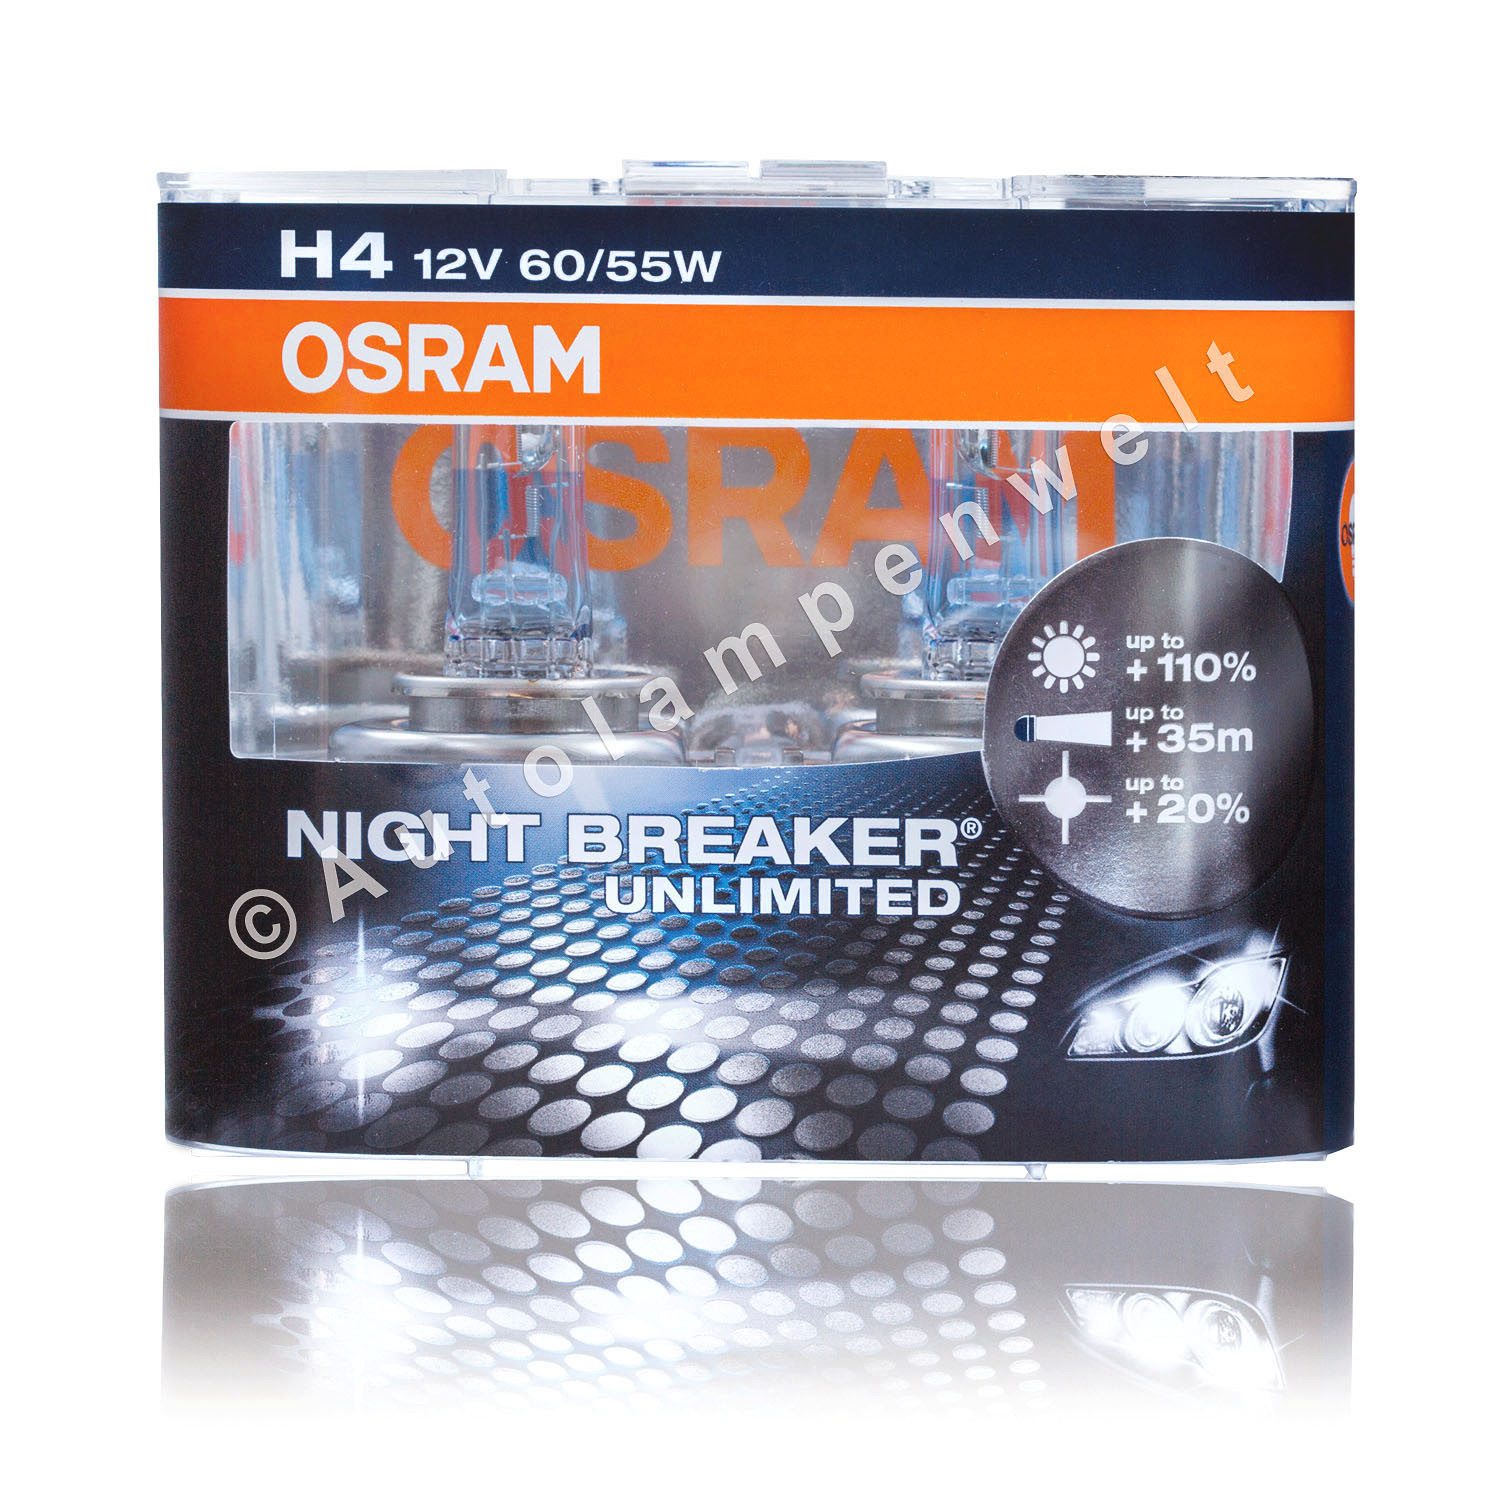 osram h4 nightbreaker unlimited. Black Bedroom Furniture Sets. Home Design Ideas